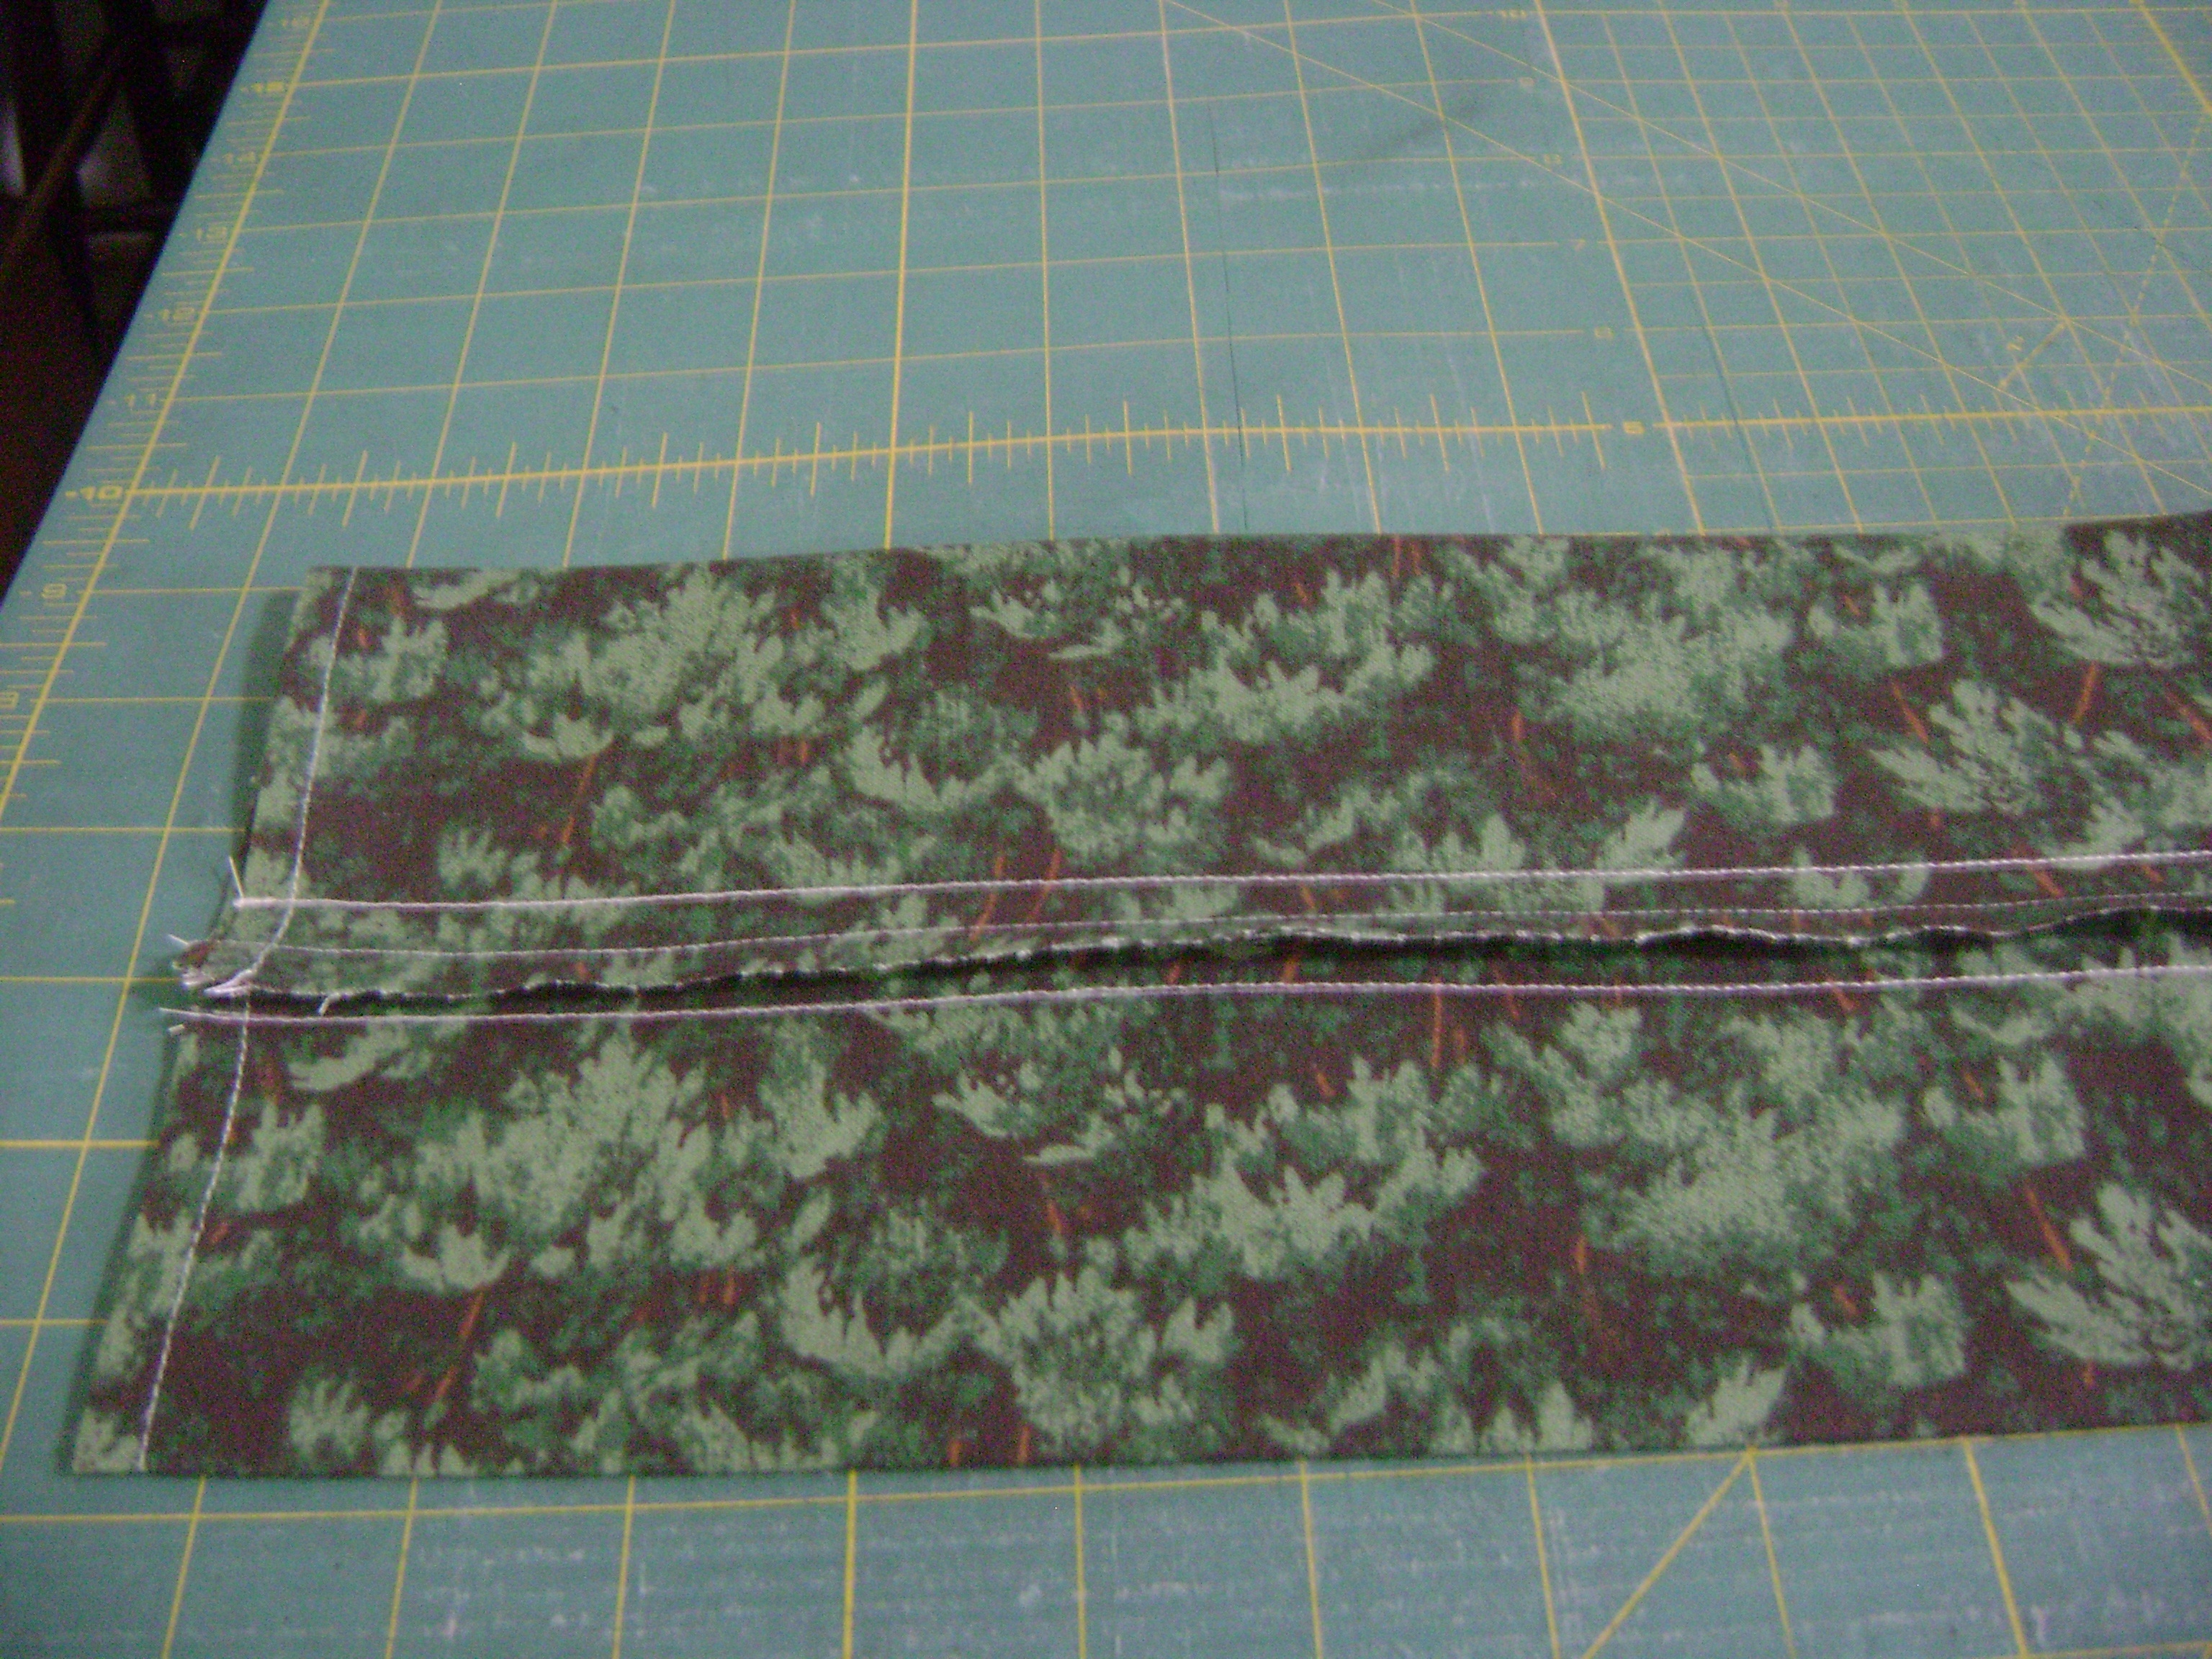 Sewing line marked & Door snakes   Anitau0027s quilts and quilting